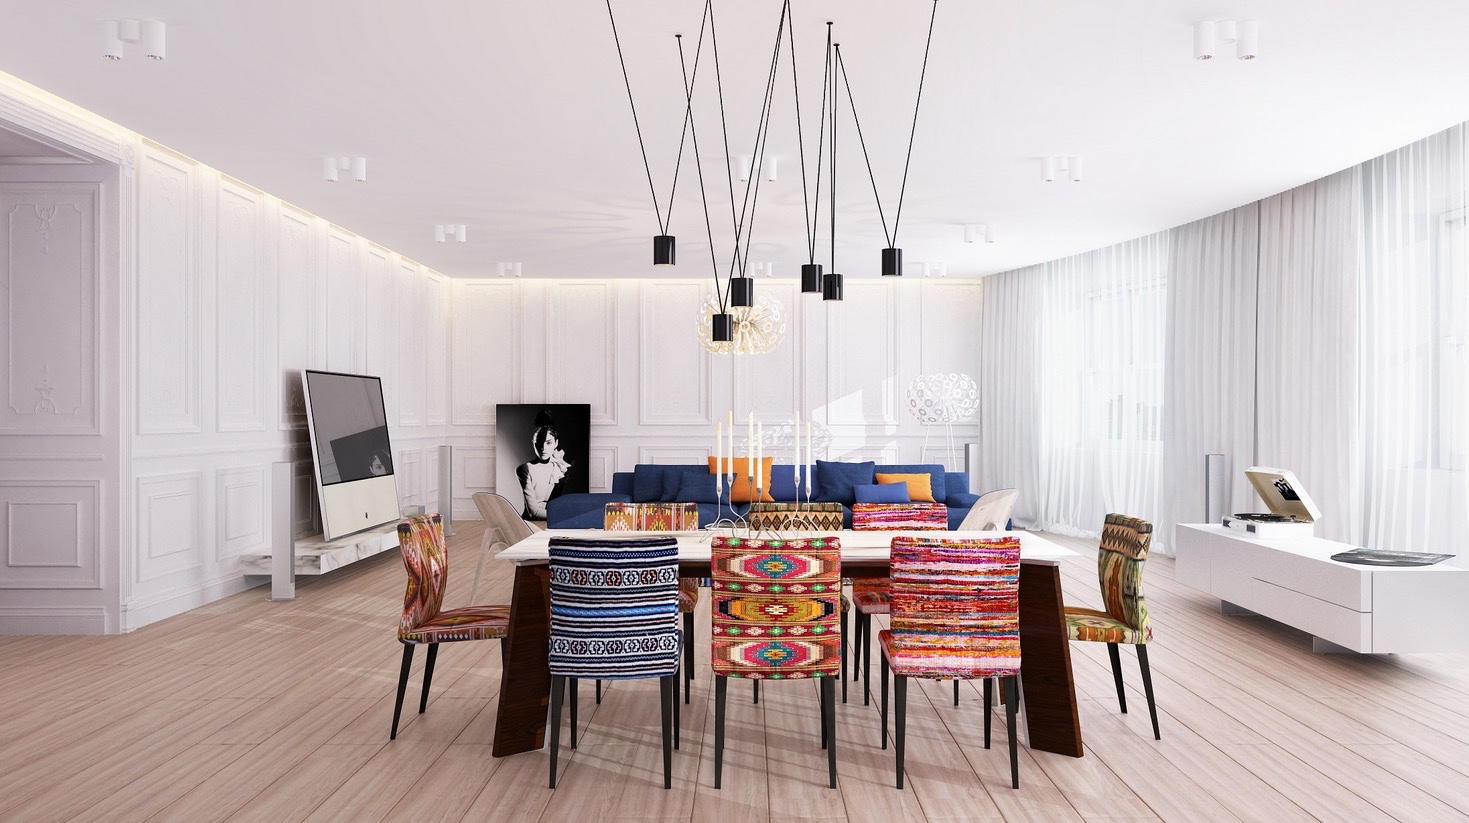 20 modern dining rooms for inspiration - Sala comedores modernos ...